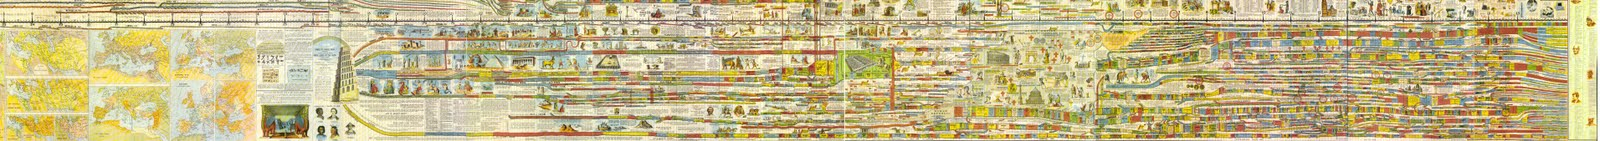 At Some Point I Would Like To Plot The Days And Events My Life On A Graphic Timeline One Seen Here Victorian Era Wall Chart Of World History